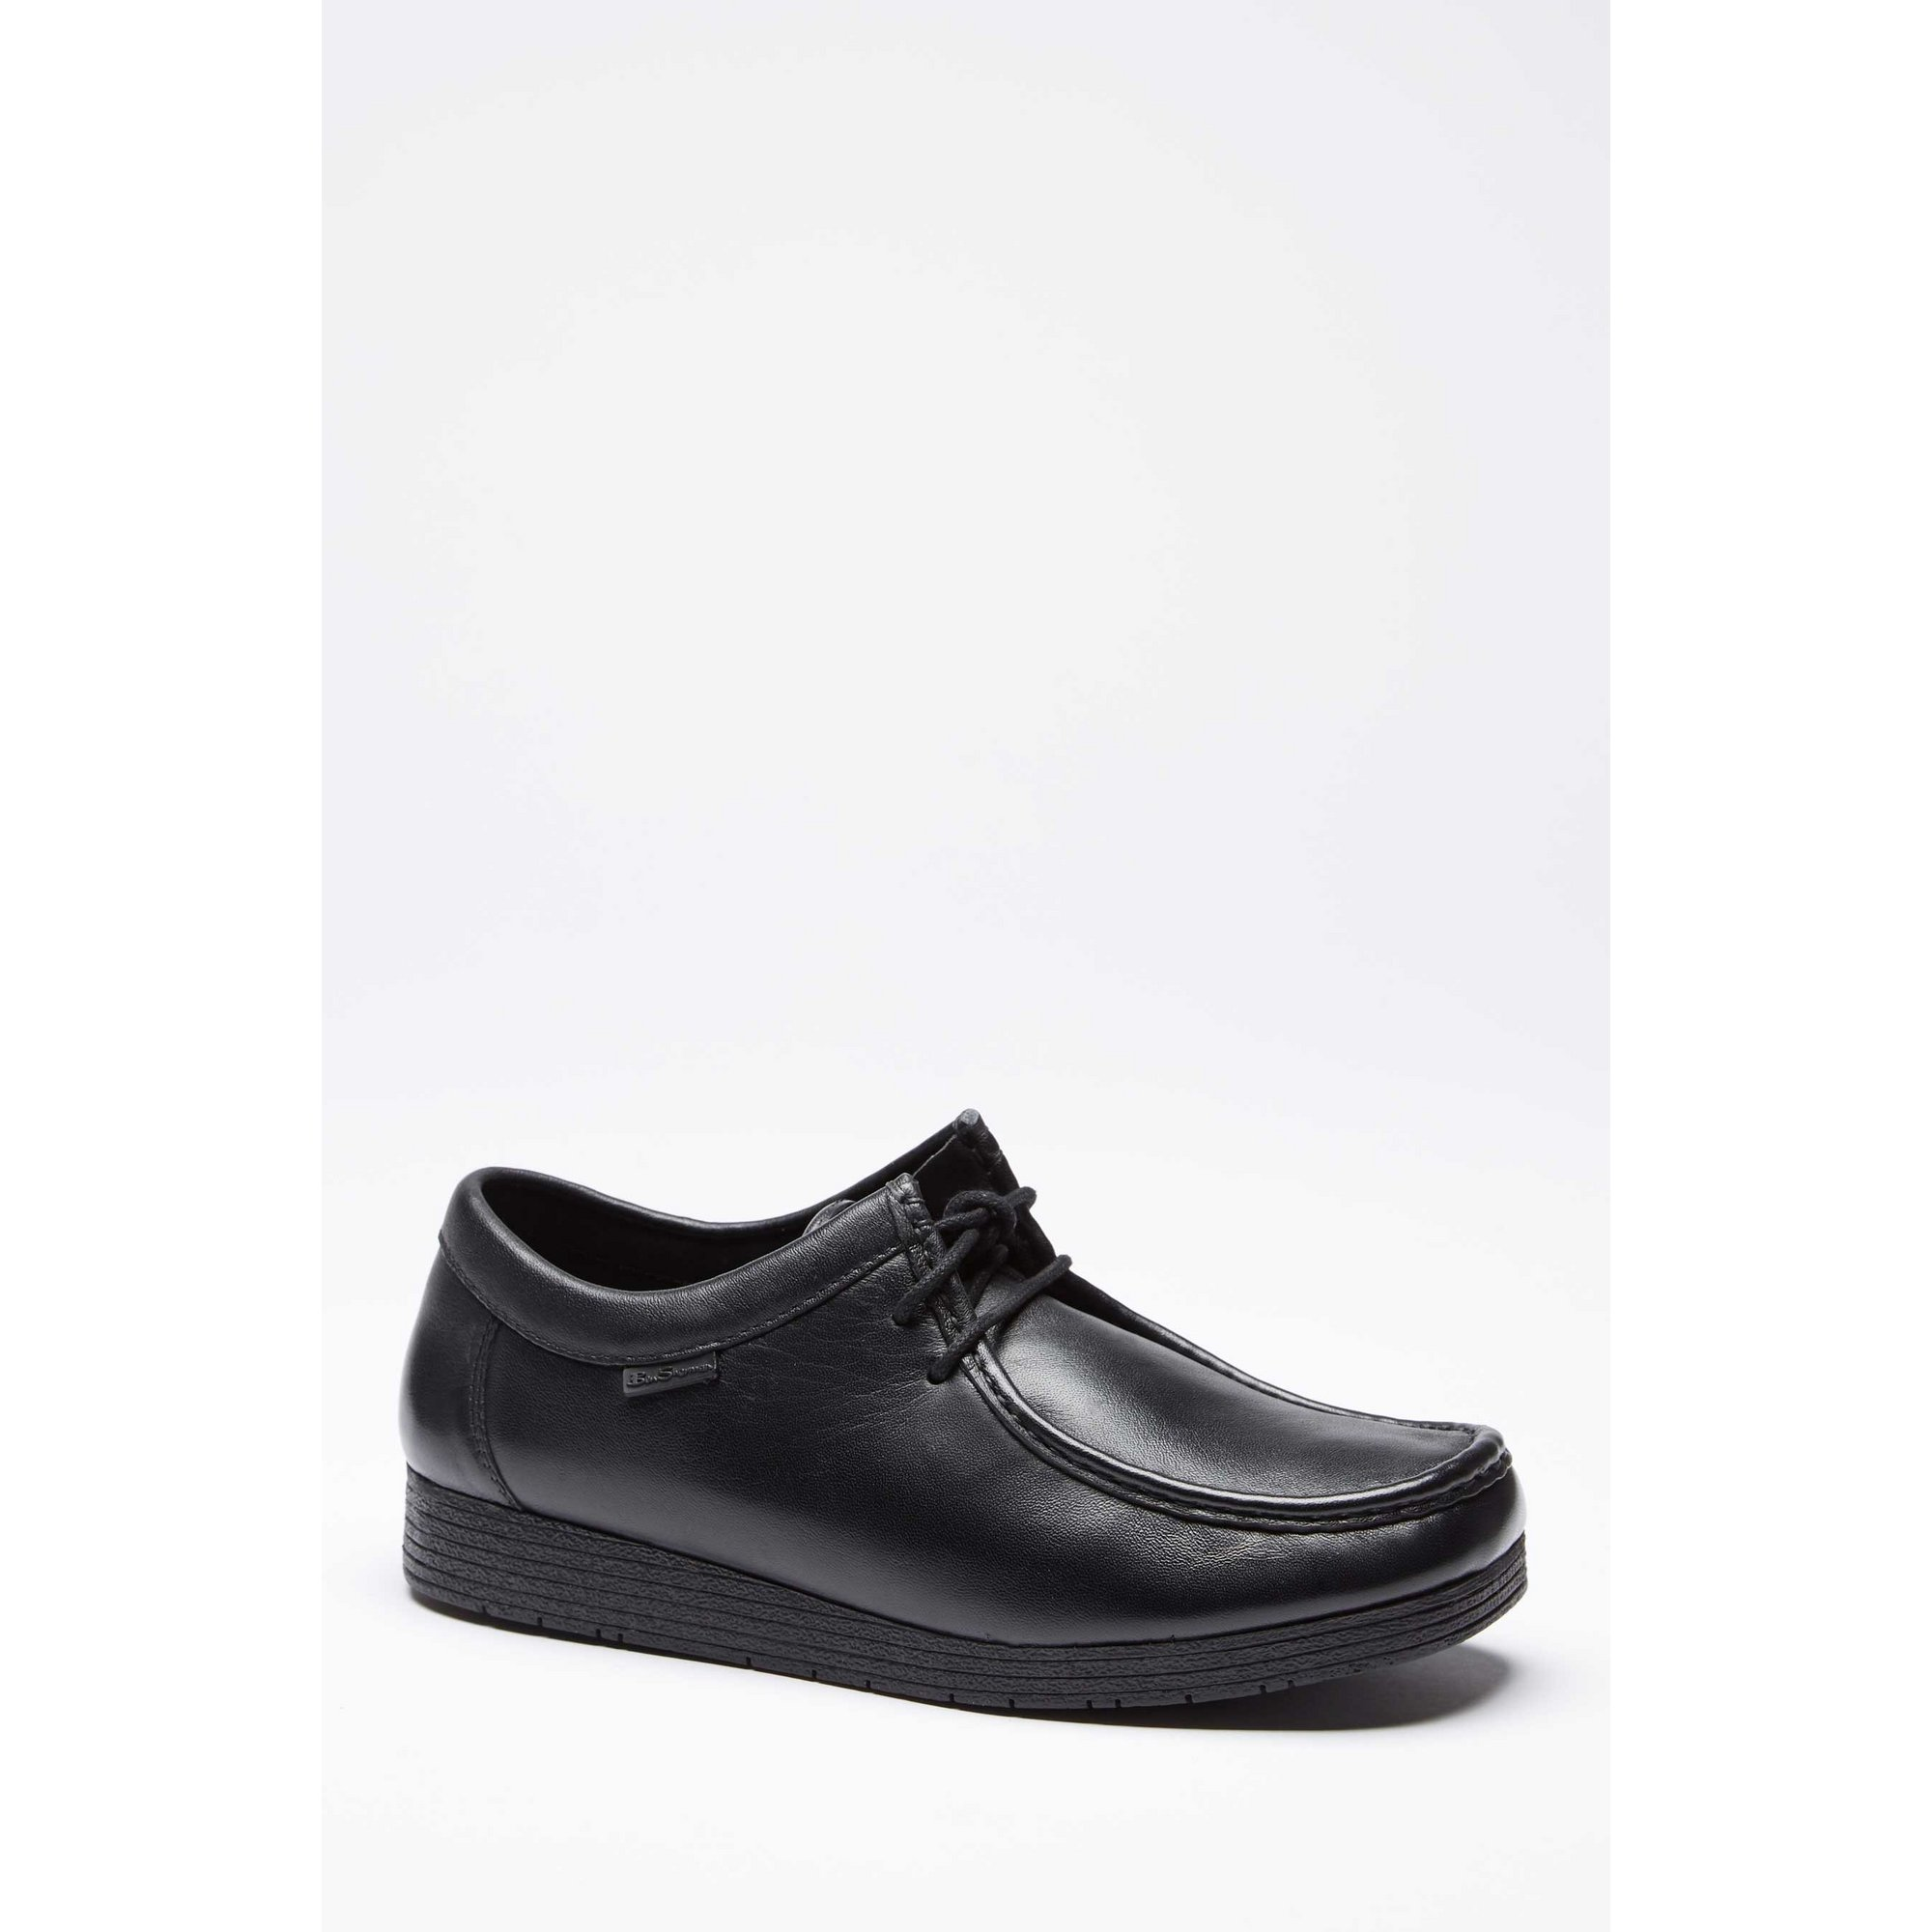 Image of Ben Sherman Black Leather Lace Up Shoes